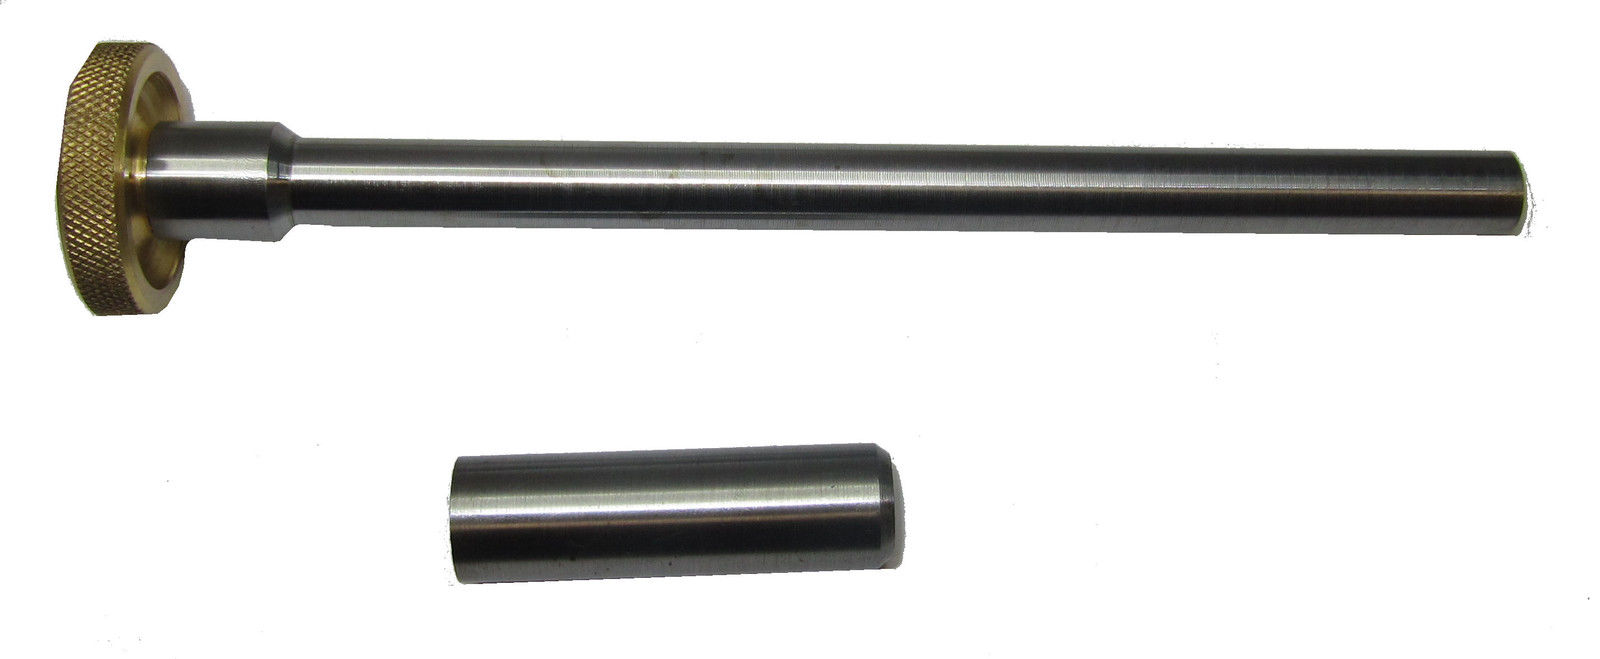 Drawbar to Fit Levin 8mm Watchmakers Lathe